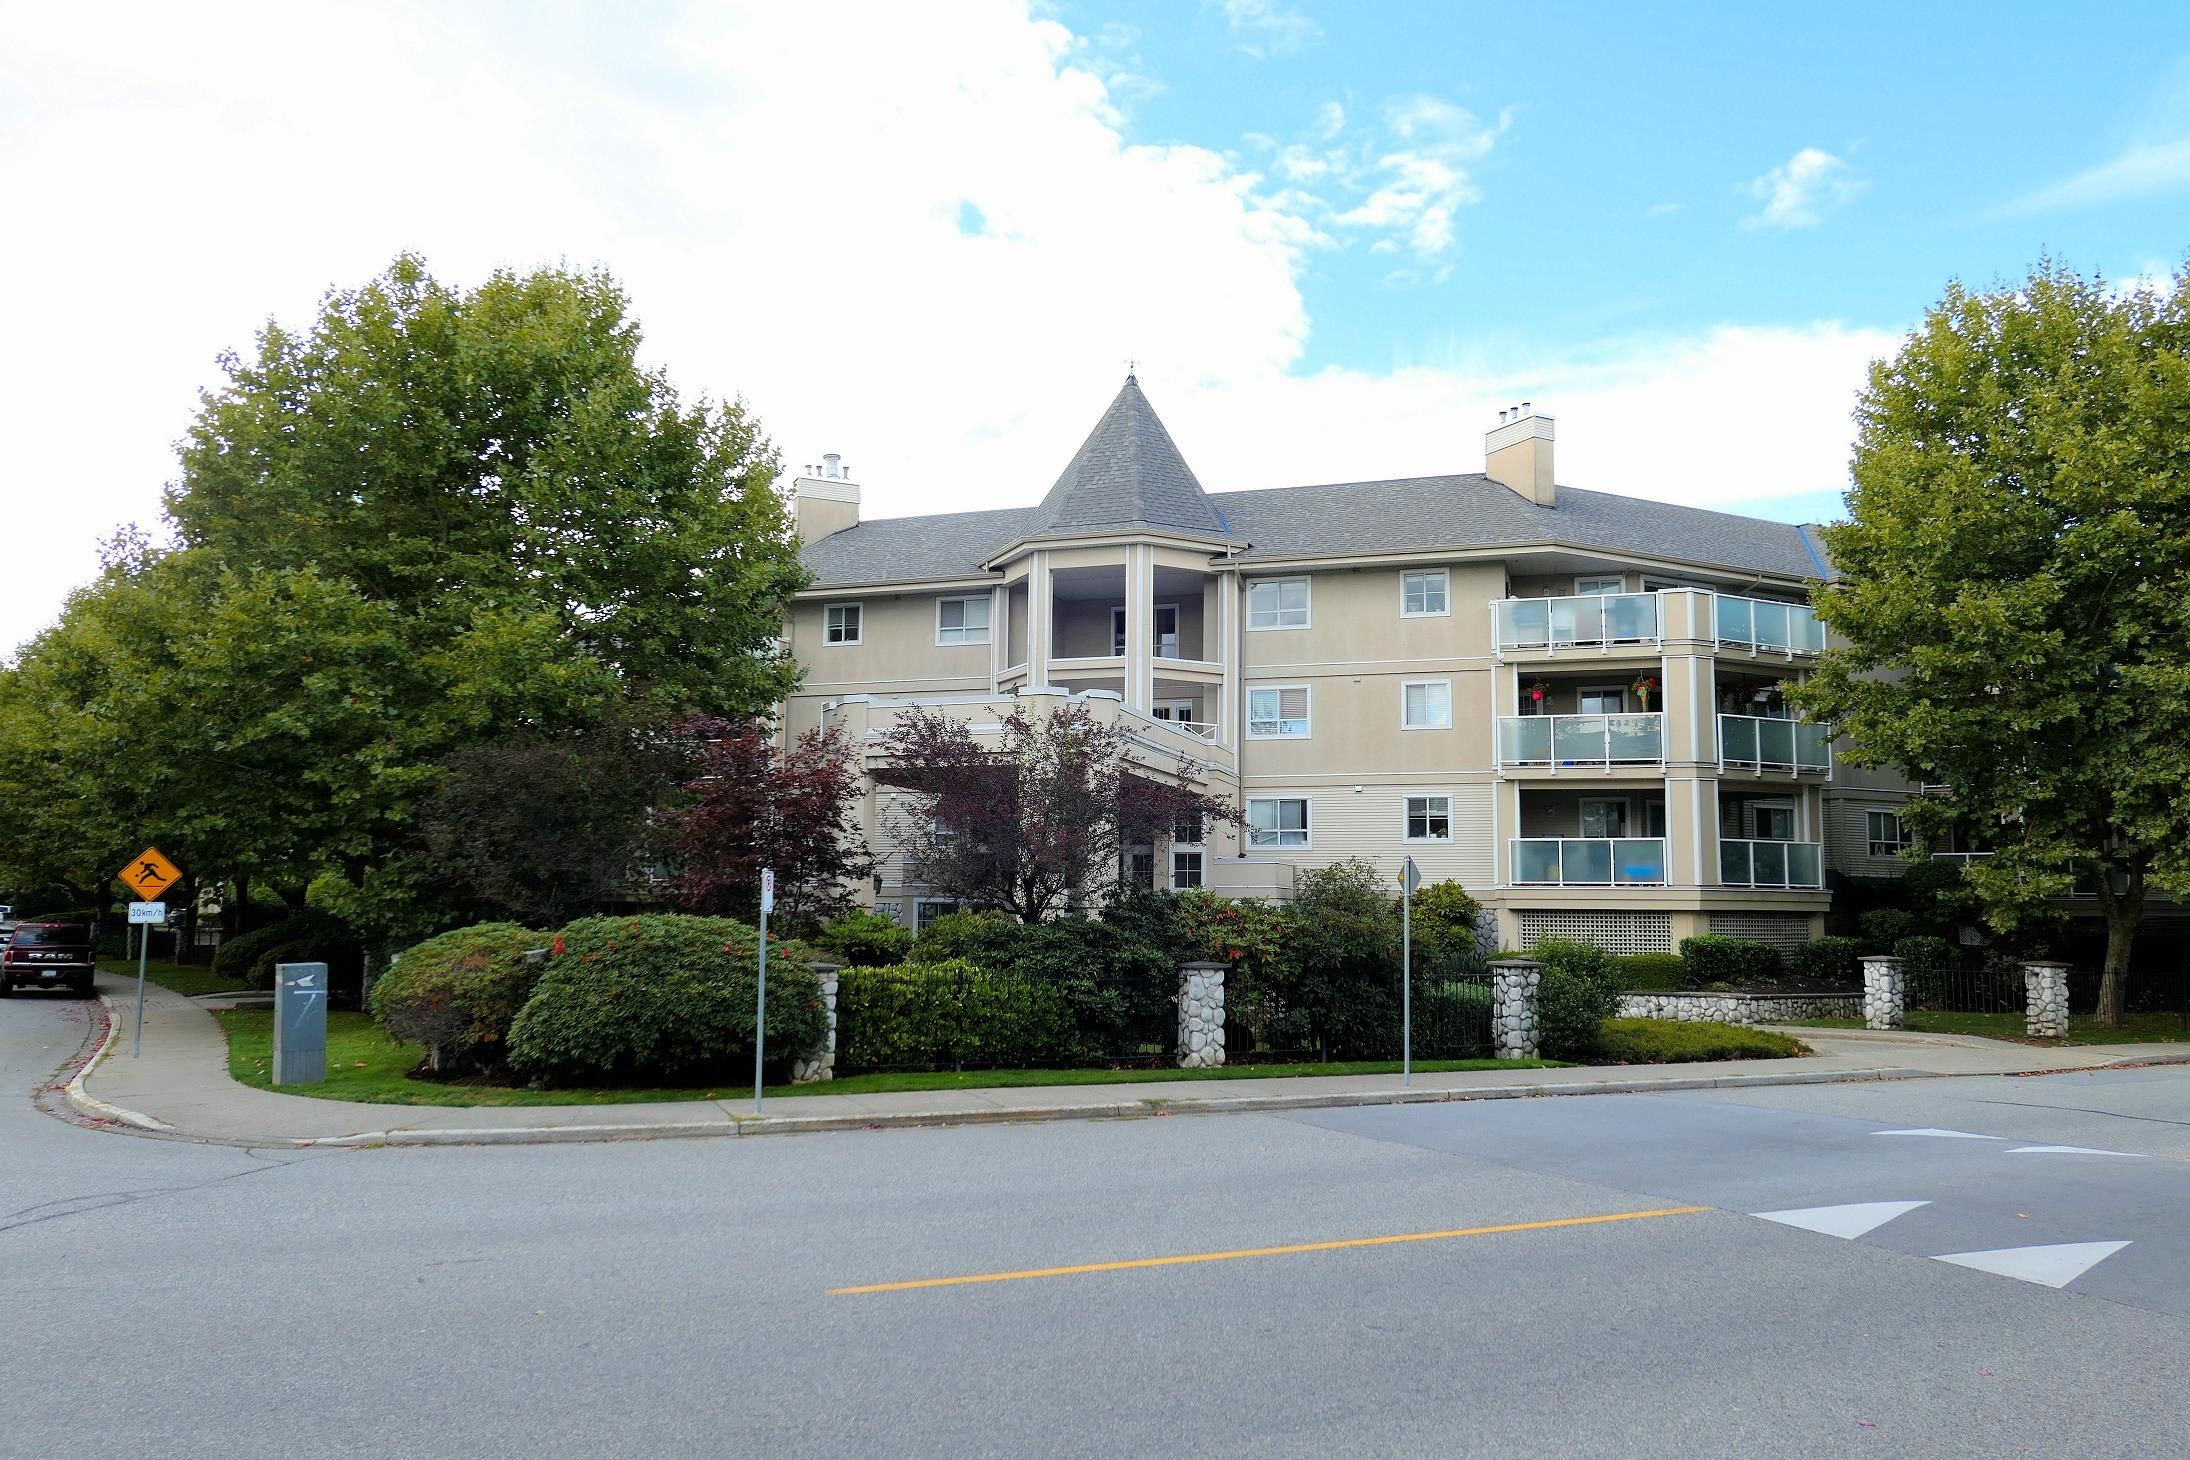 """Main Photo: 205 20145 55A Avenue in Langley: Langley City Condo for sale in """"Blackberry Lane 3"""" : MLS®# R2619315"""